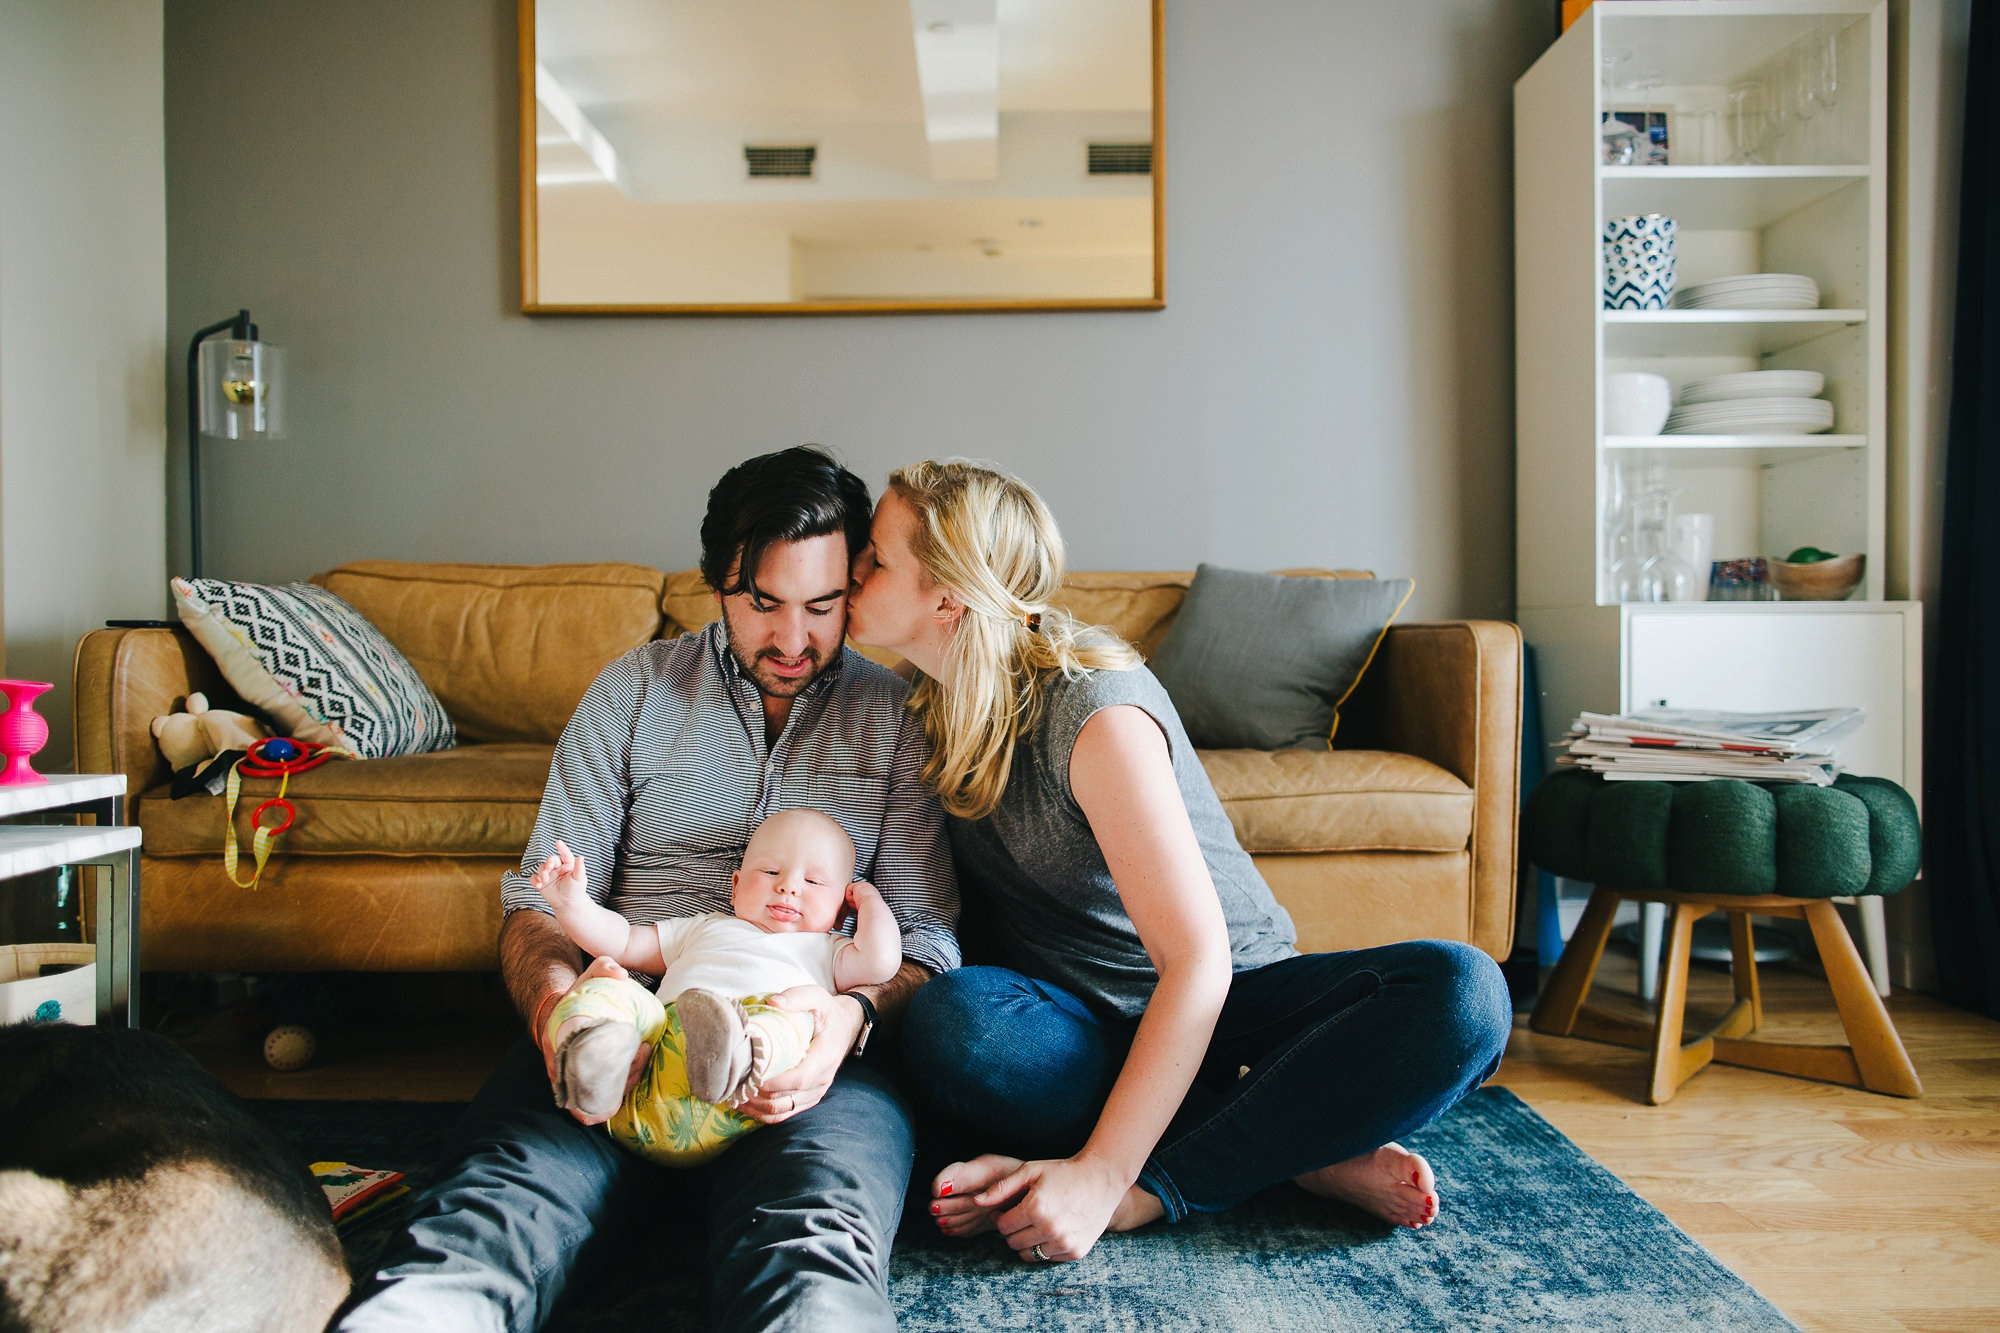 Urban New York Family Lifestyle Session, lifestyle picture ideas, what to wear for lifestyle pictures